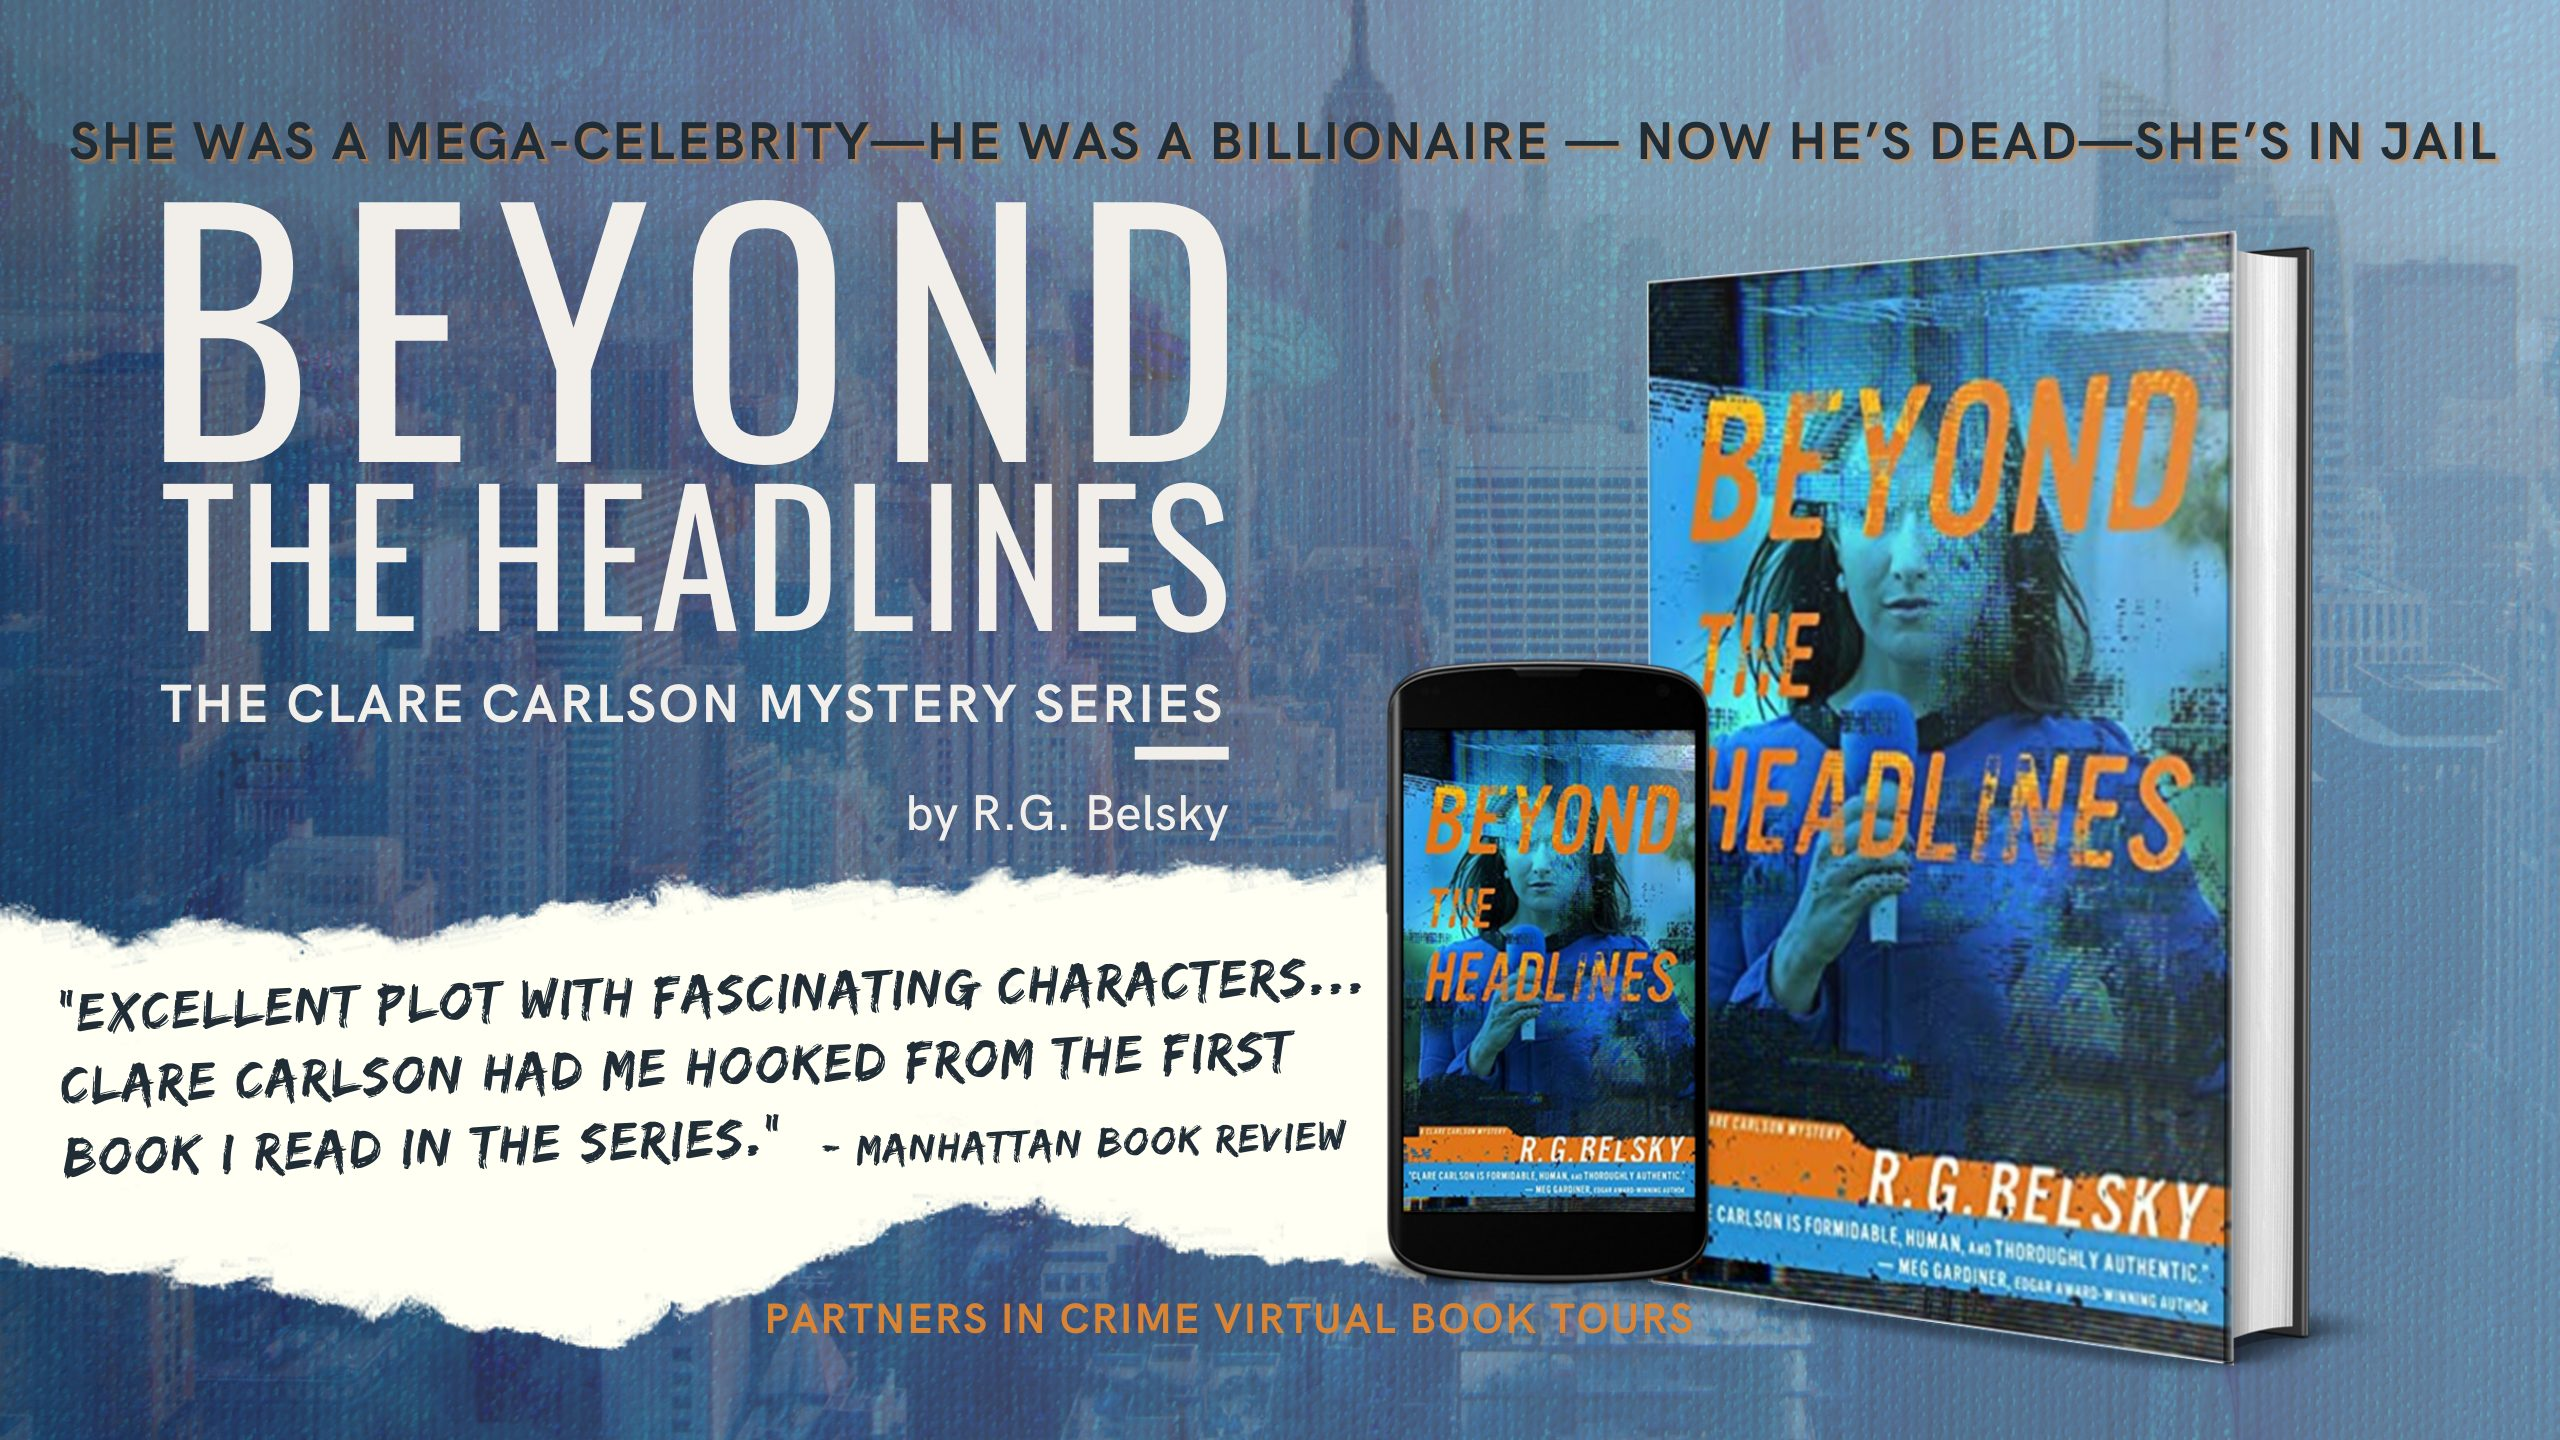 Beyond The Headlines by R.G. Belsky Banner